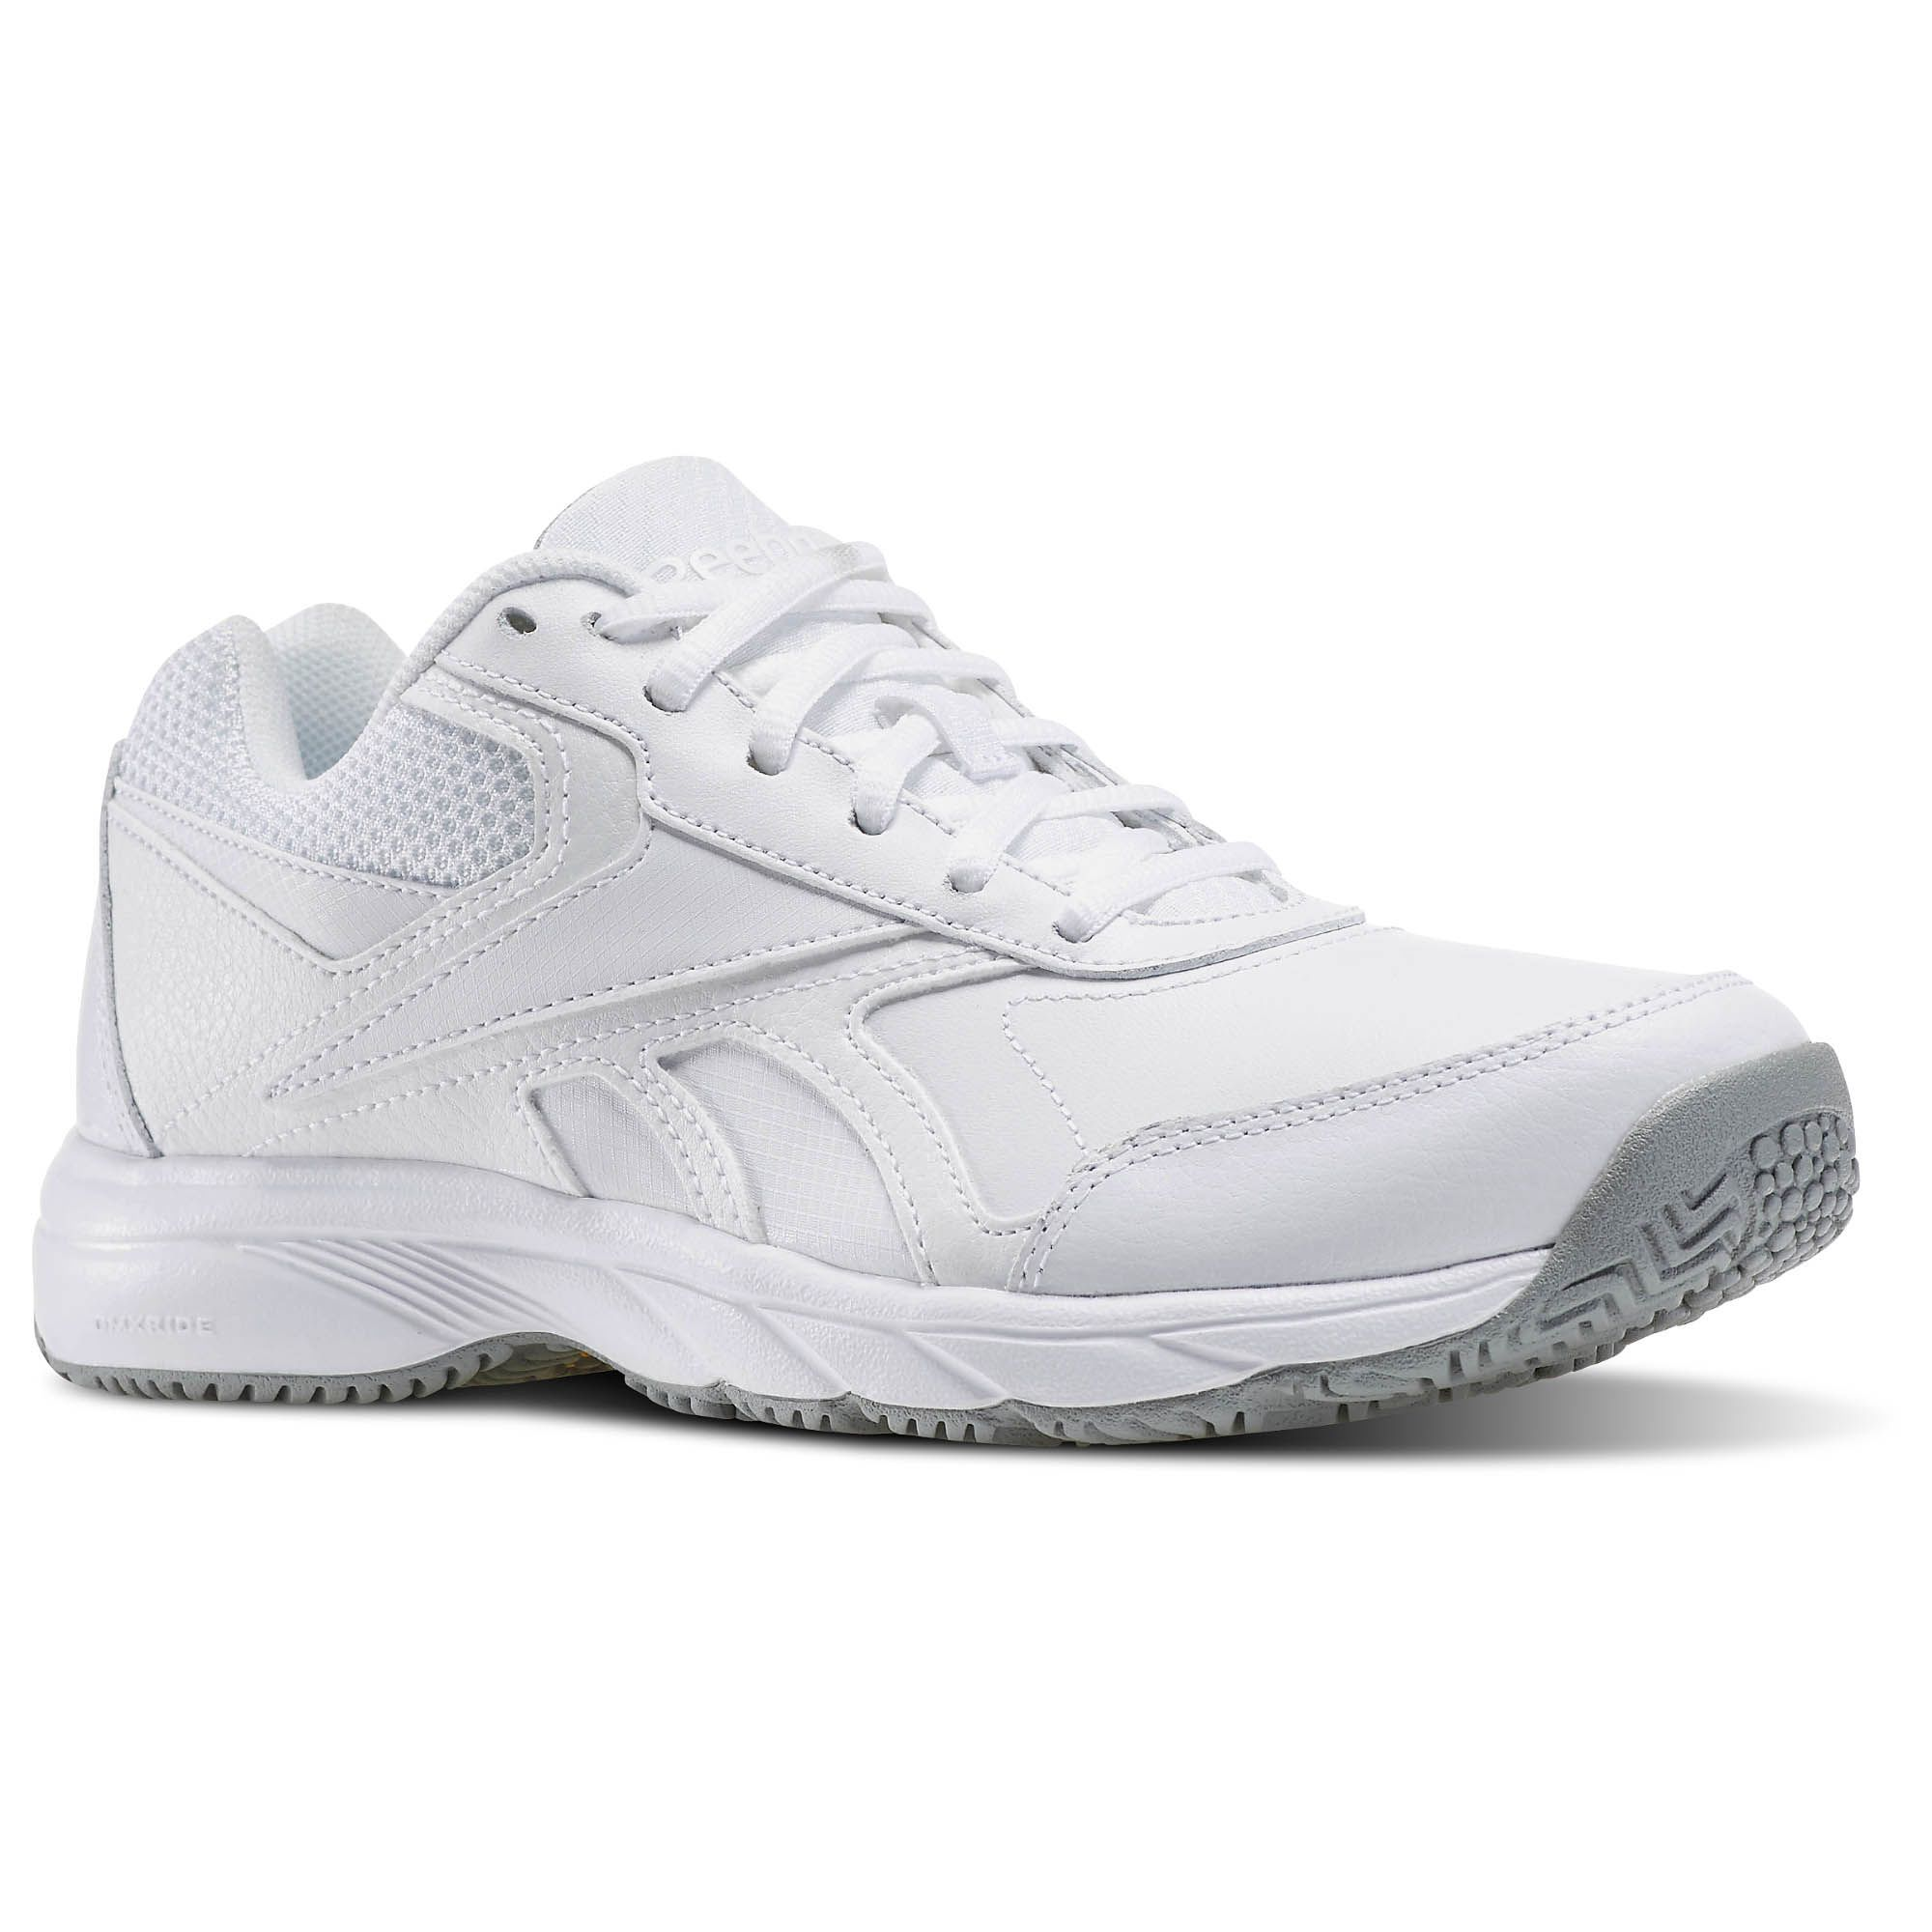 efac04944c Shop for Work N Cushion 2.0 - White at reebok.com. See all the ...